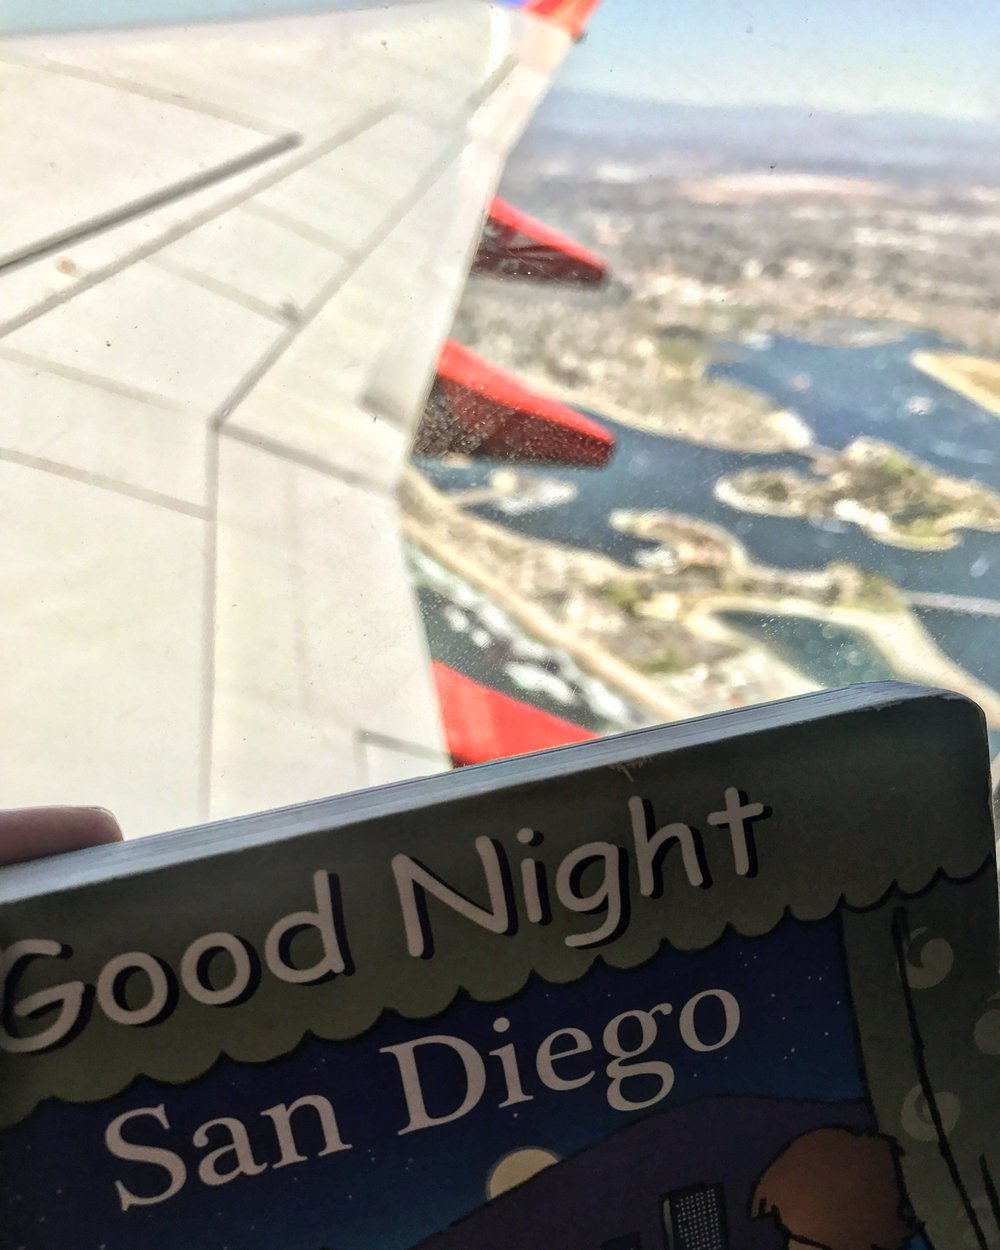 Goodnight San Diego